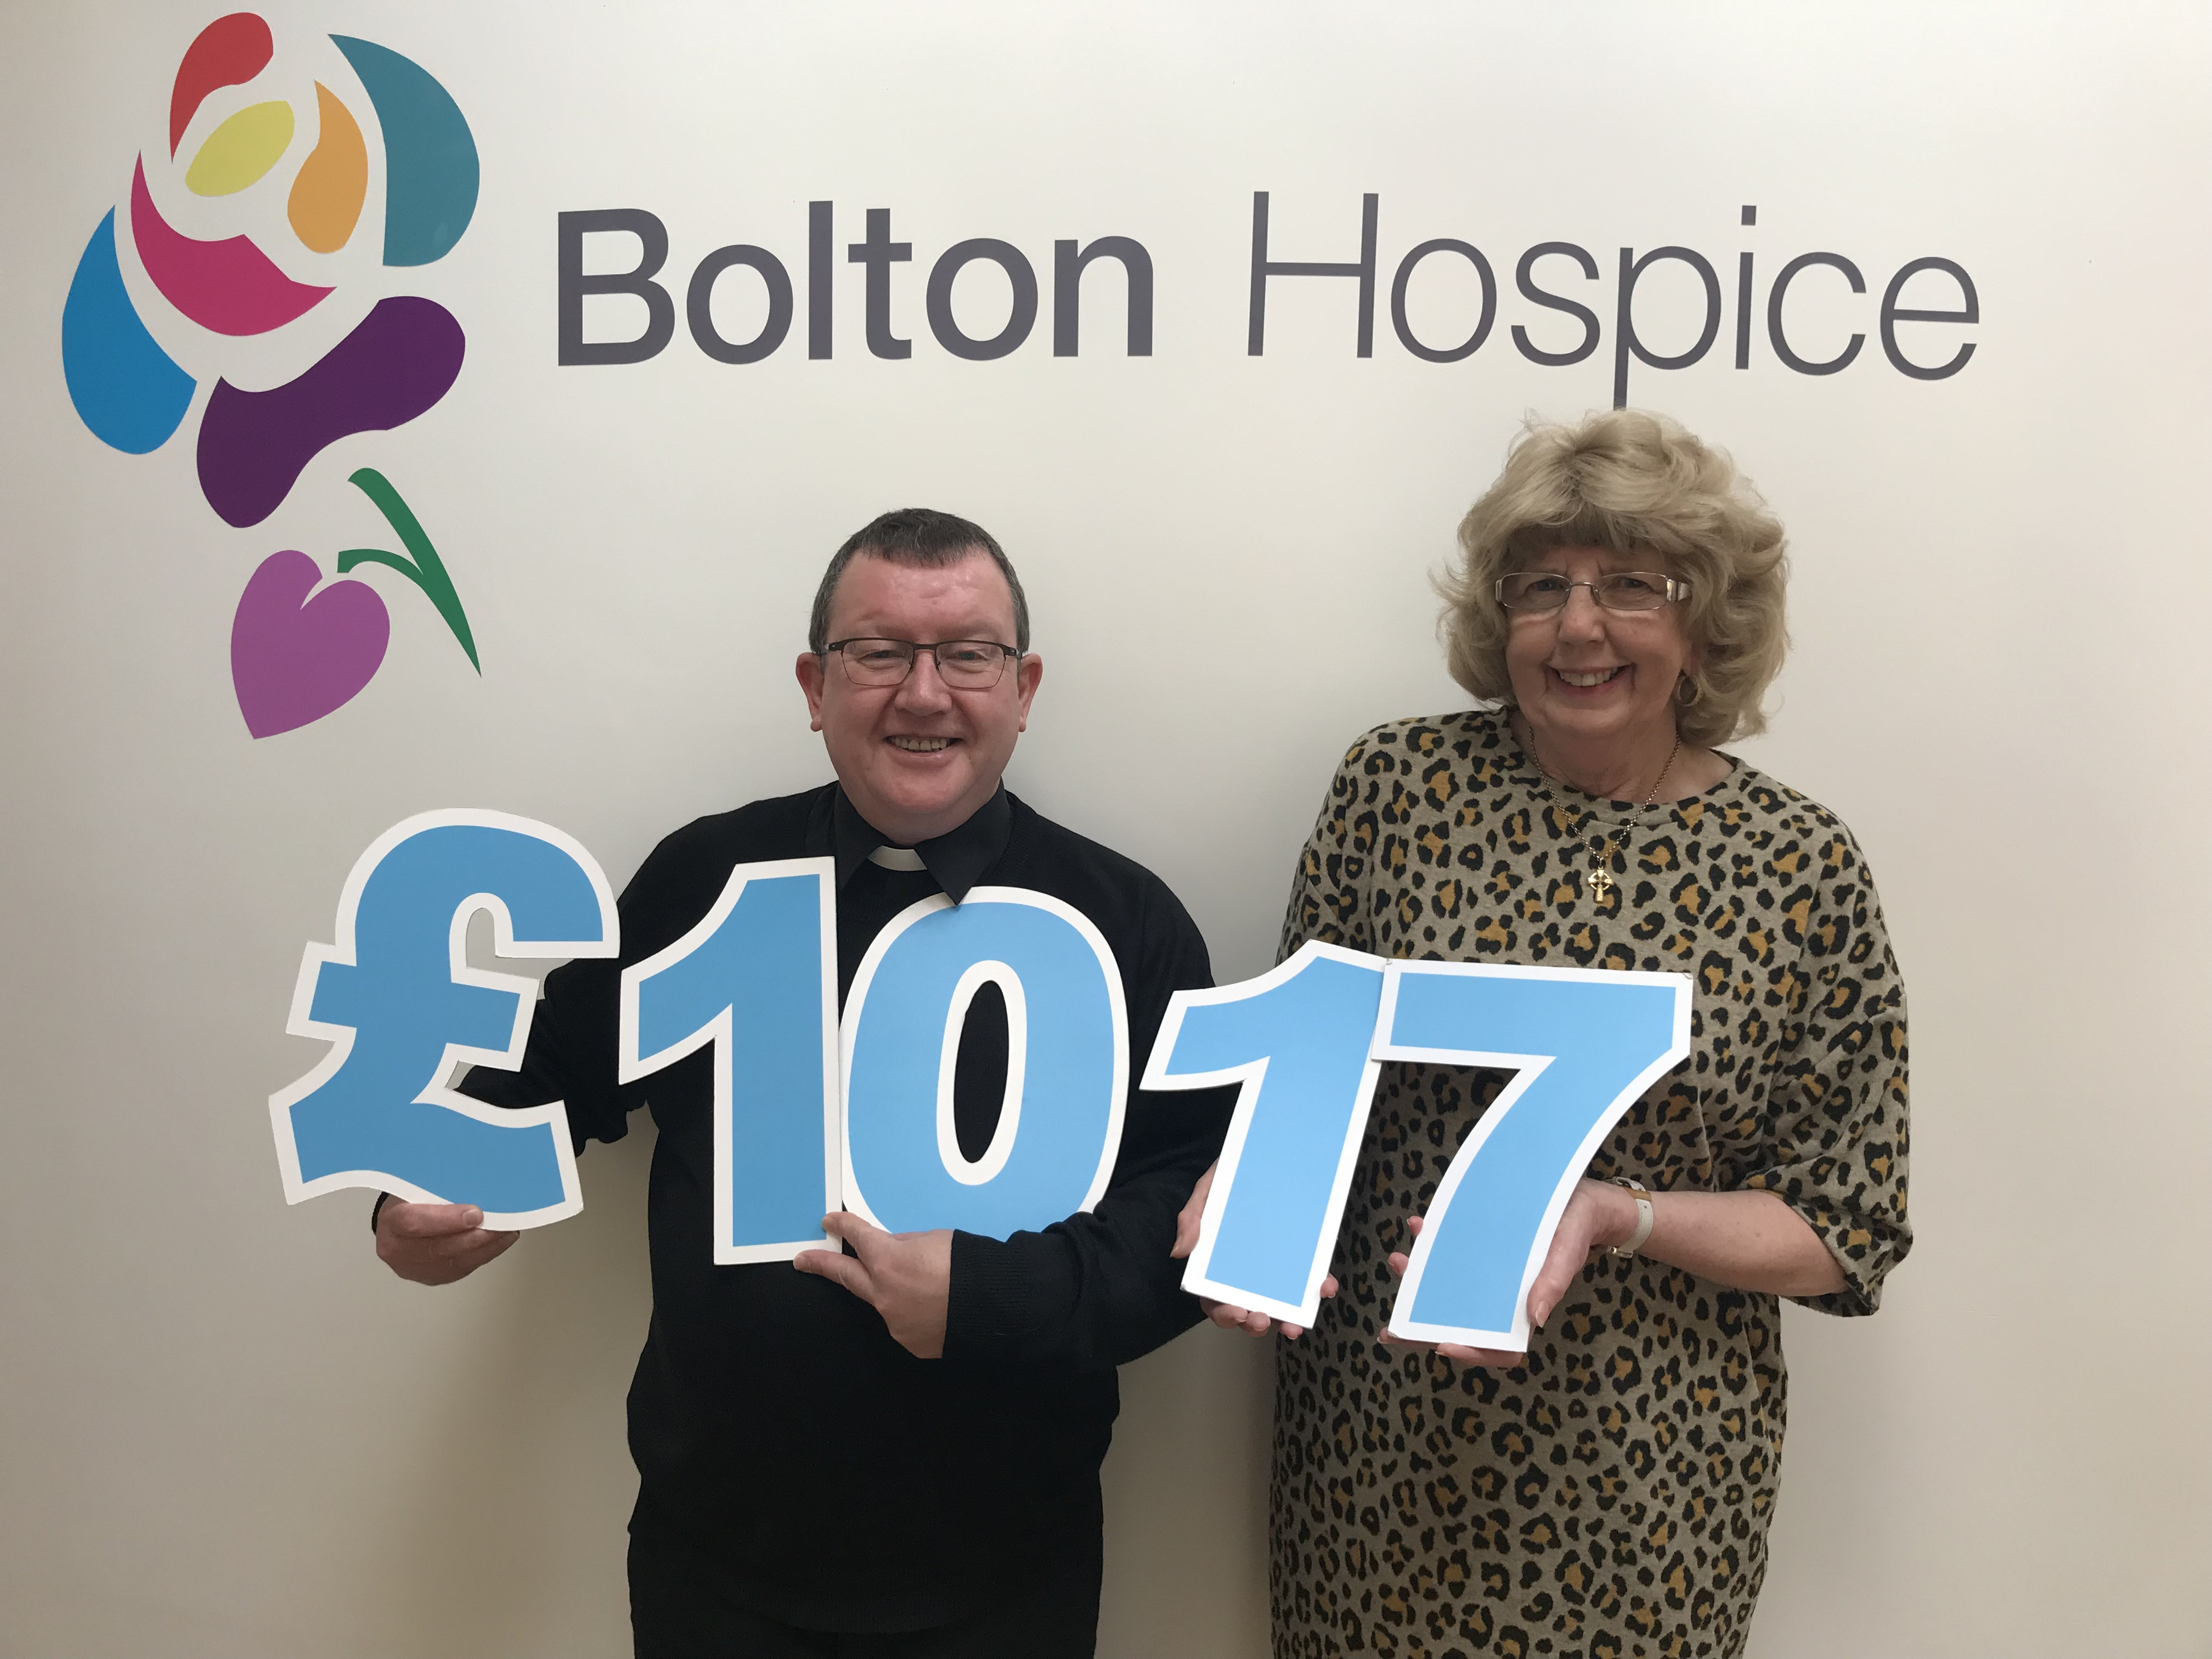 Presentation of Cheque to Bolton Hospice 2019